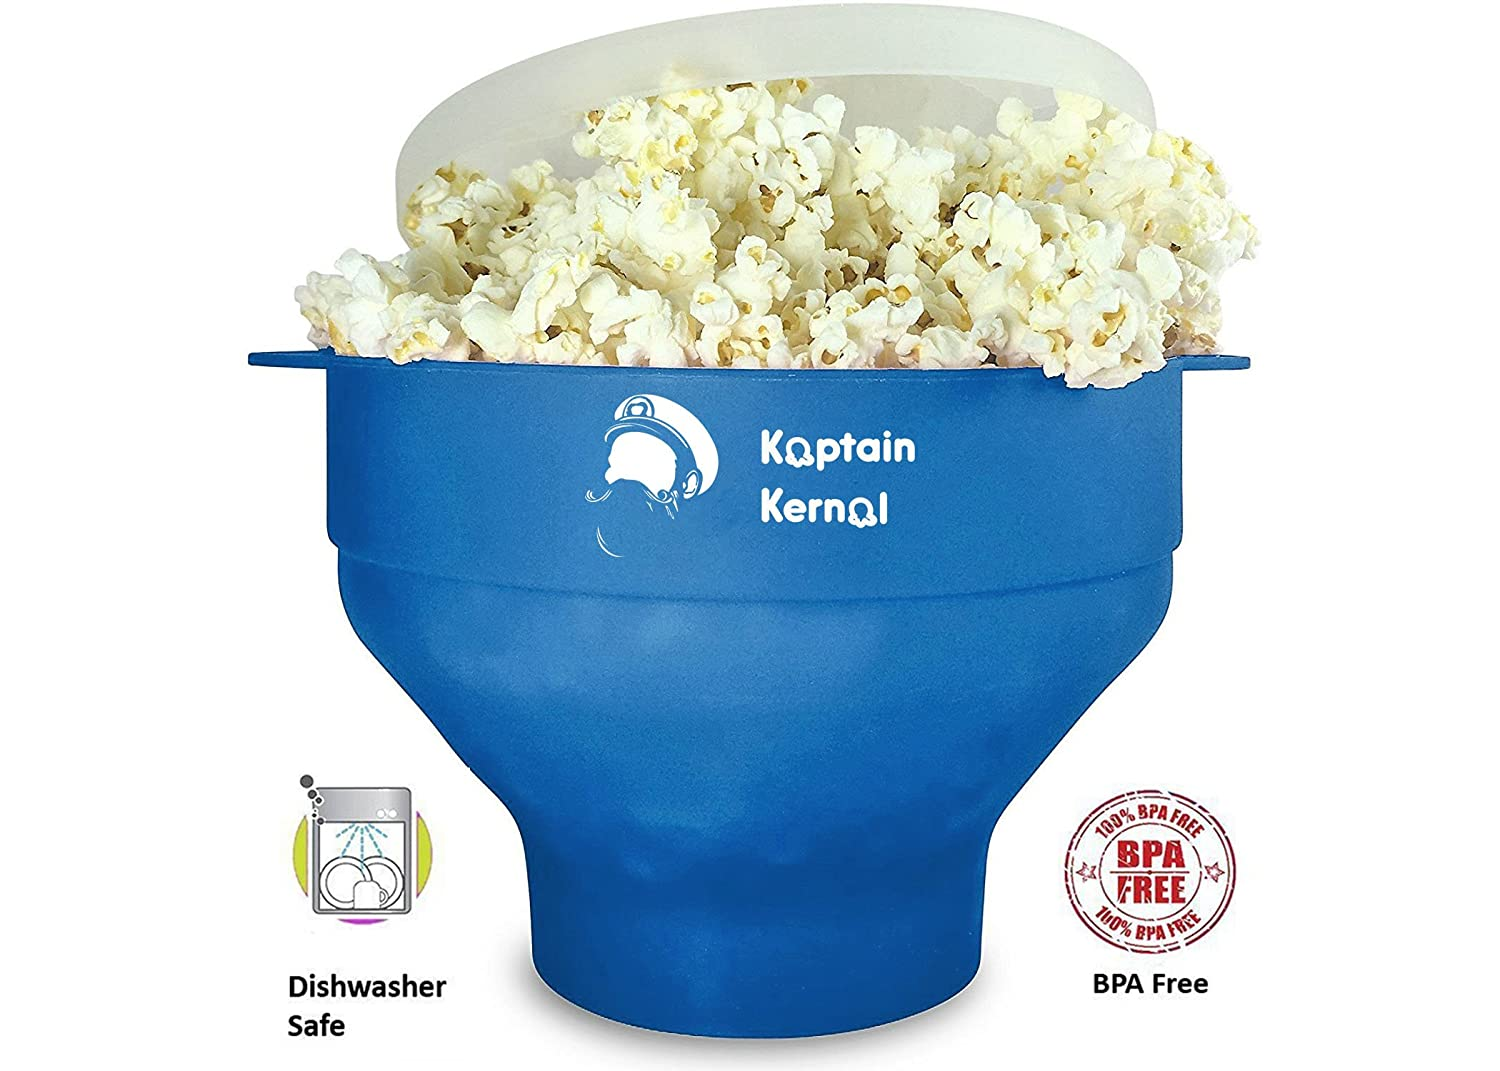 Kaptain Kernel Microwave Popcorn Popper, Collapsible Silicone Bowl, Hot Air Popcorn Maker, Healthy Machine No Oil Needed, BPA Free With Lid AND Convenient Handles (Blue); Designed in Canada GYK Creations